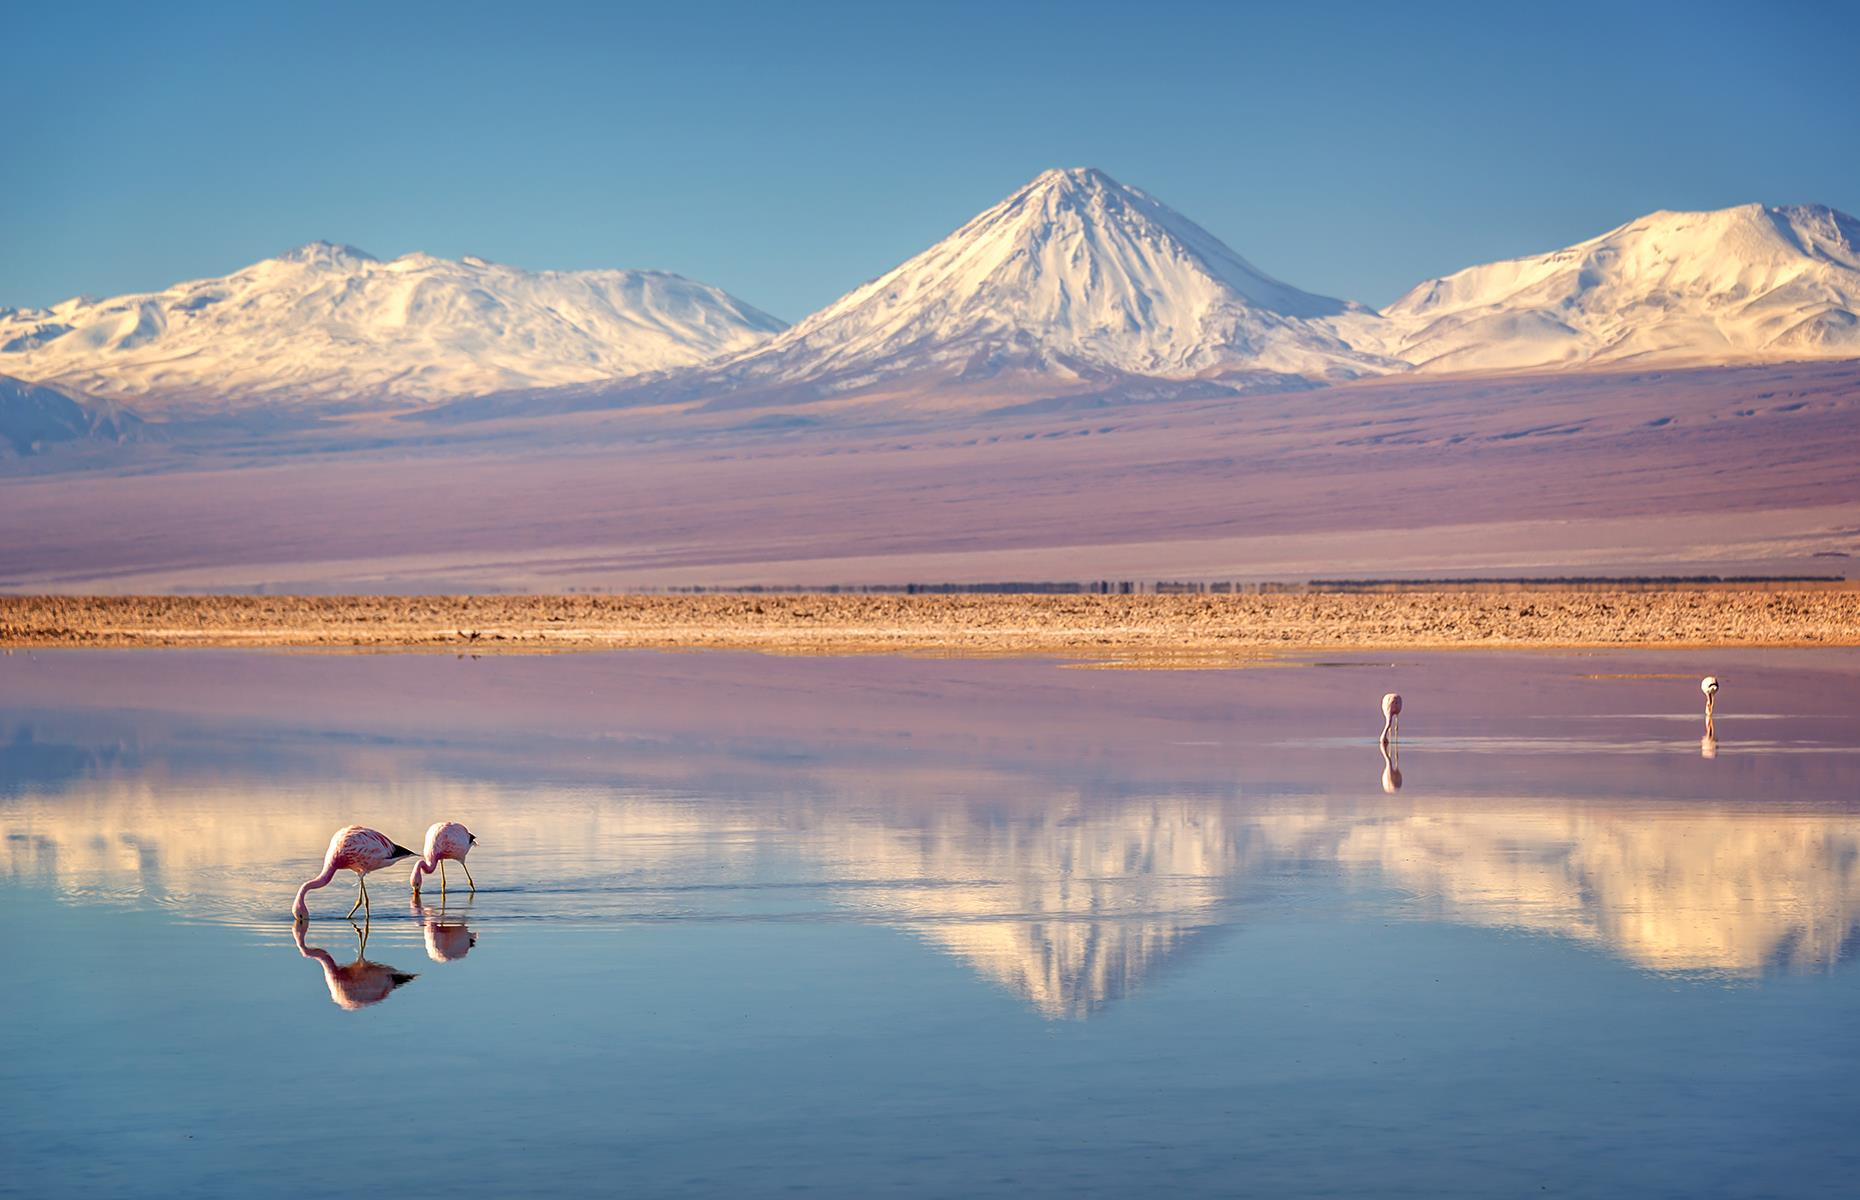 Slide 31 of 31: Often mistakenly cited as the driest place on Earth, Chile's Atacama Desert isn't far off it. One of the world's strangest landscapes, its 40,000-square-mile (103,600sq km) expanse is defined by salt basins, red rocks, sand and soil so lifeless that NASA can carry out its Mars ground tests here. Although Atacama is very sparsely populated and living conditions aren't ideal, many species have made it home, including the Andean flamingos, living in the high-altitude salt flats.